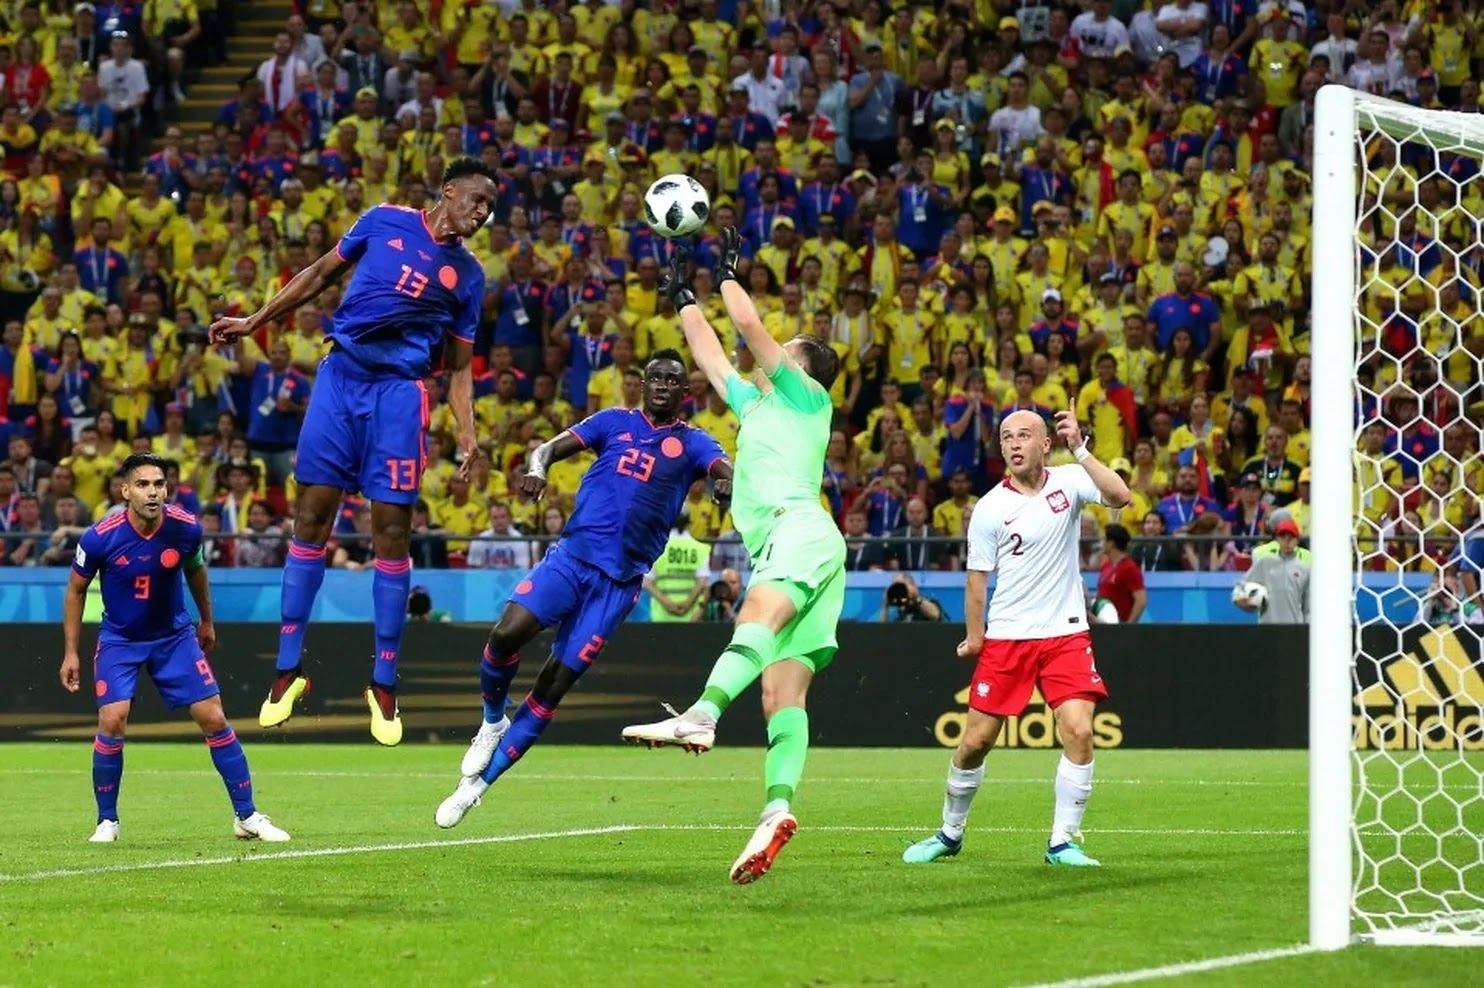 Poland vs. Colombia 2018 World Cup: Colombia eliminates Poland, 3-0, in dominant performance